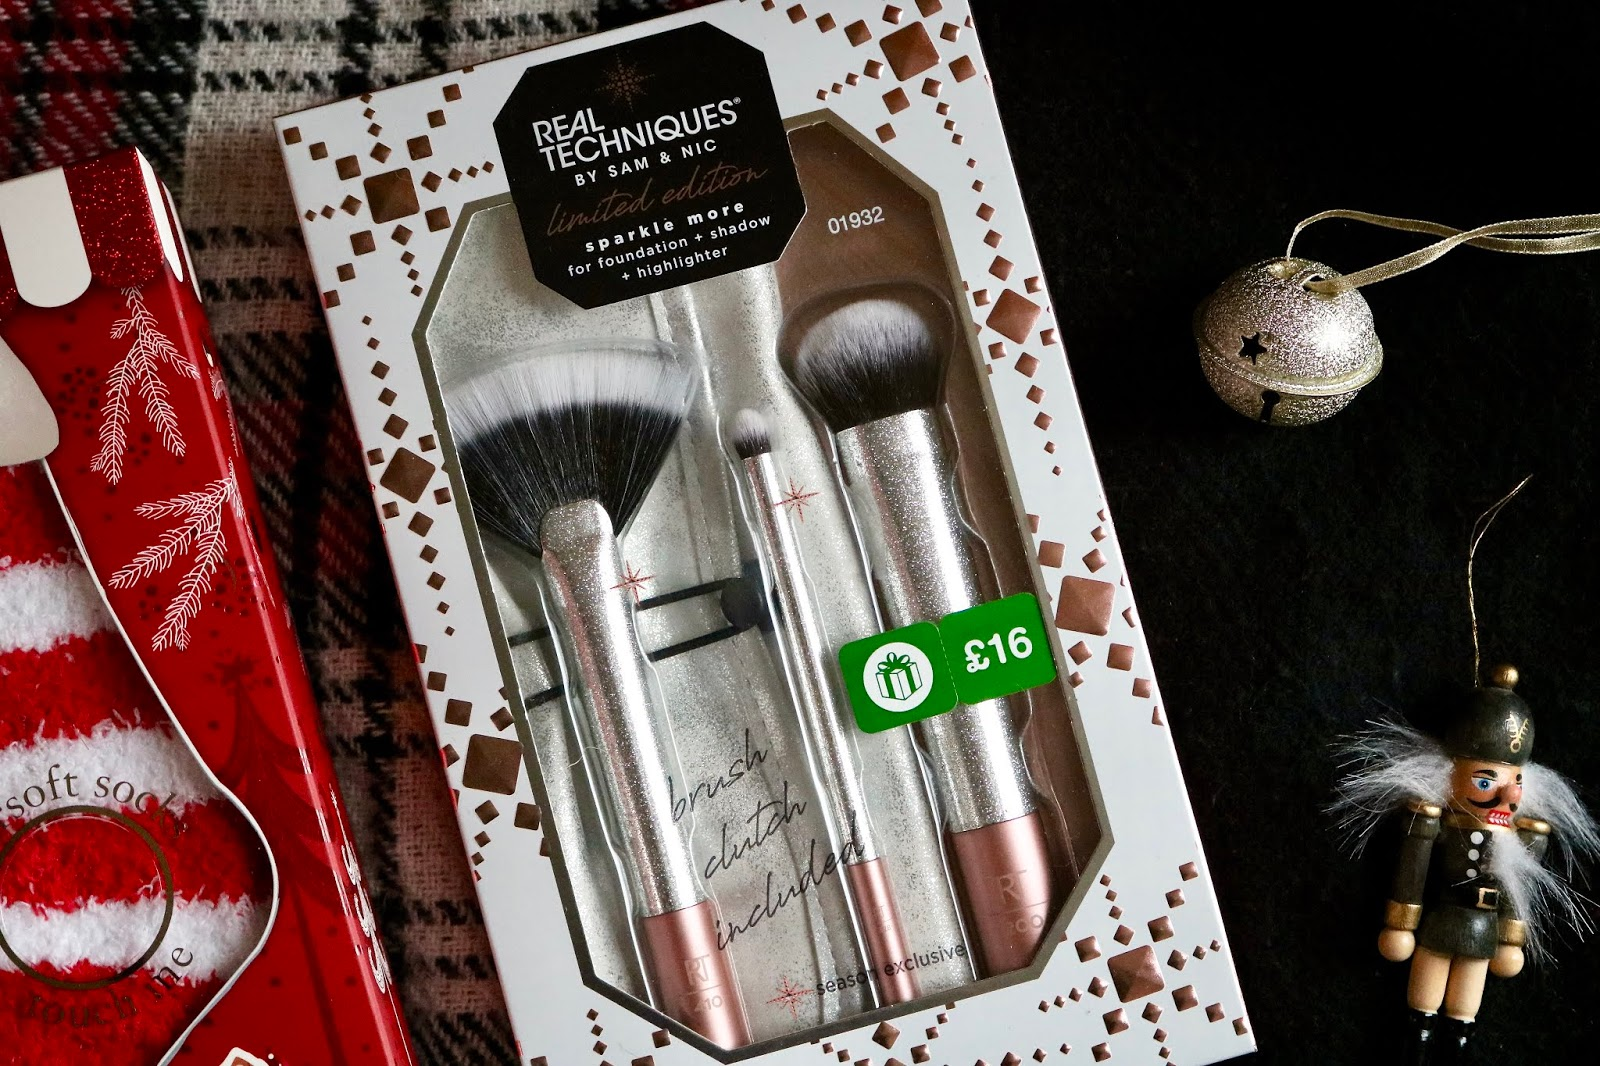 REAL TECHNIQUES SPARKLE MORE GIFT SET